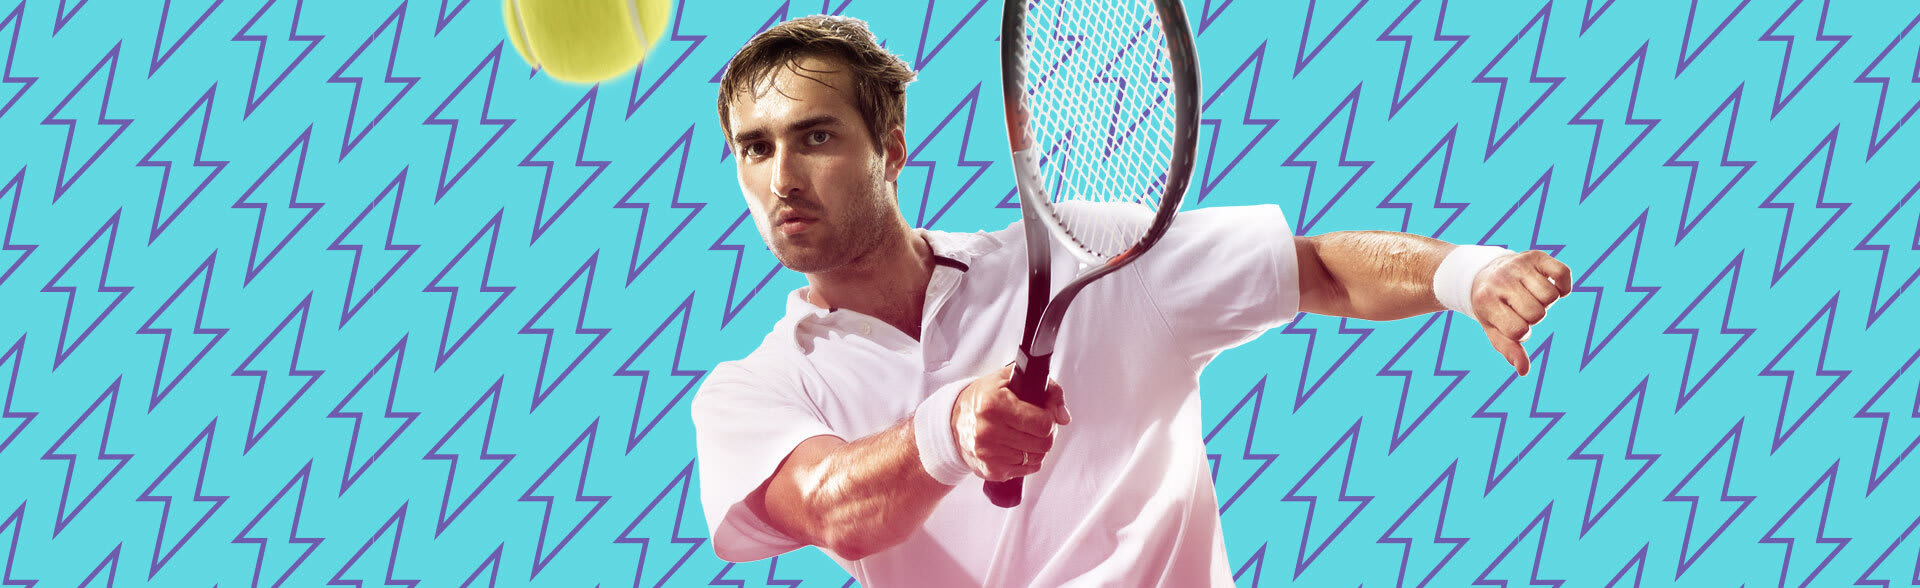 Tennis: Finding value from the data